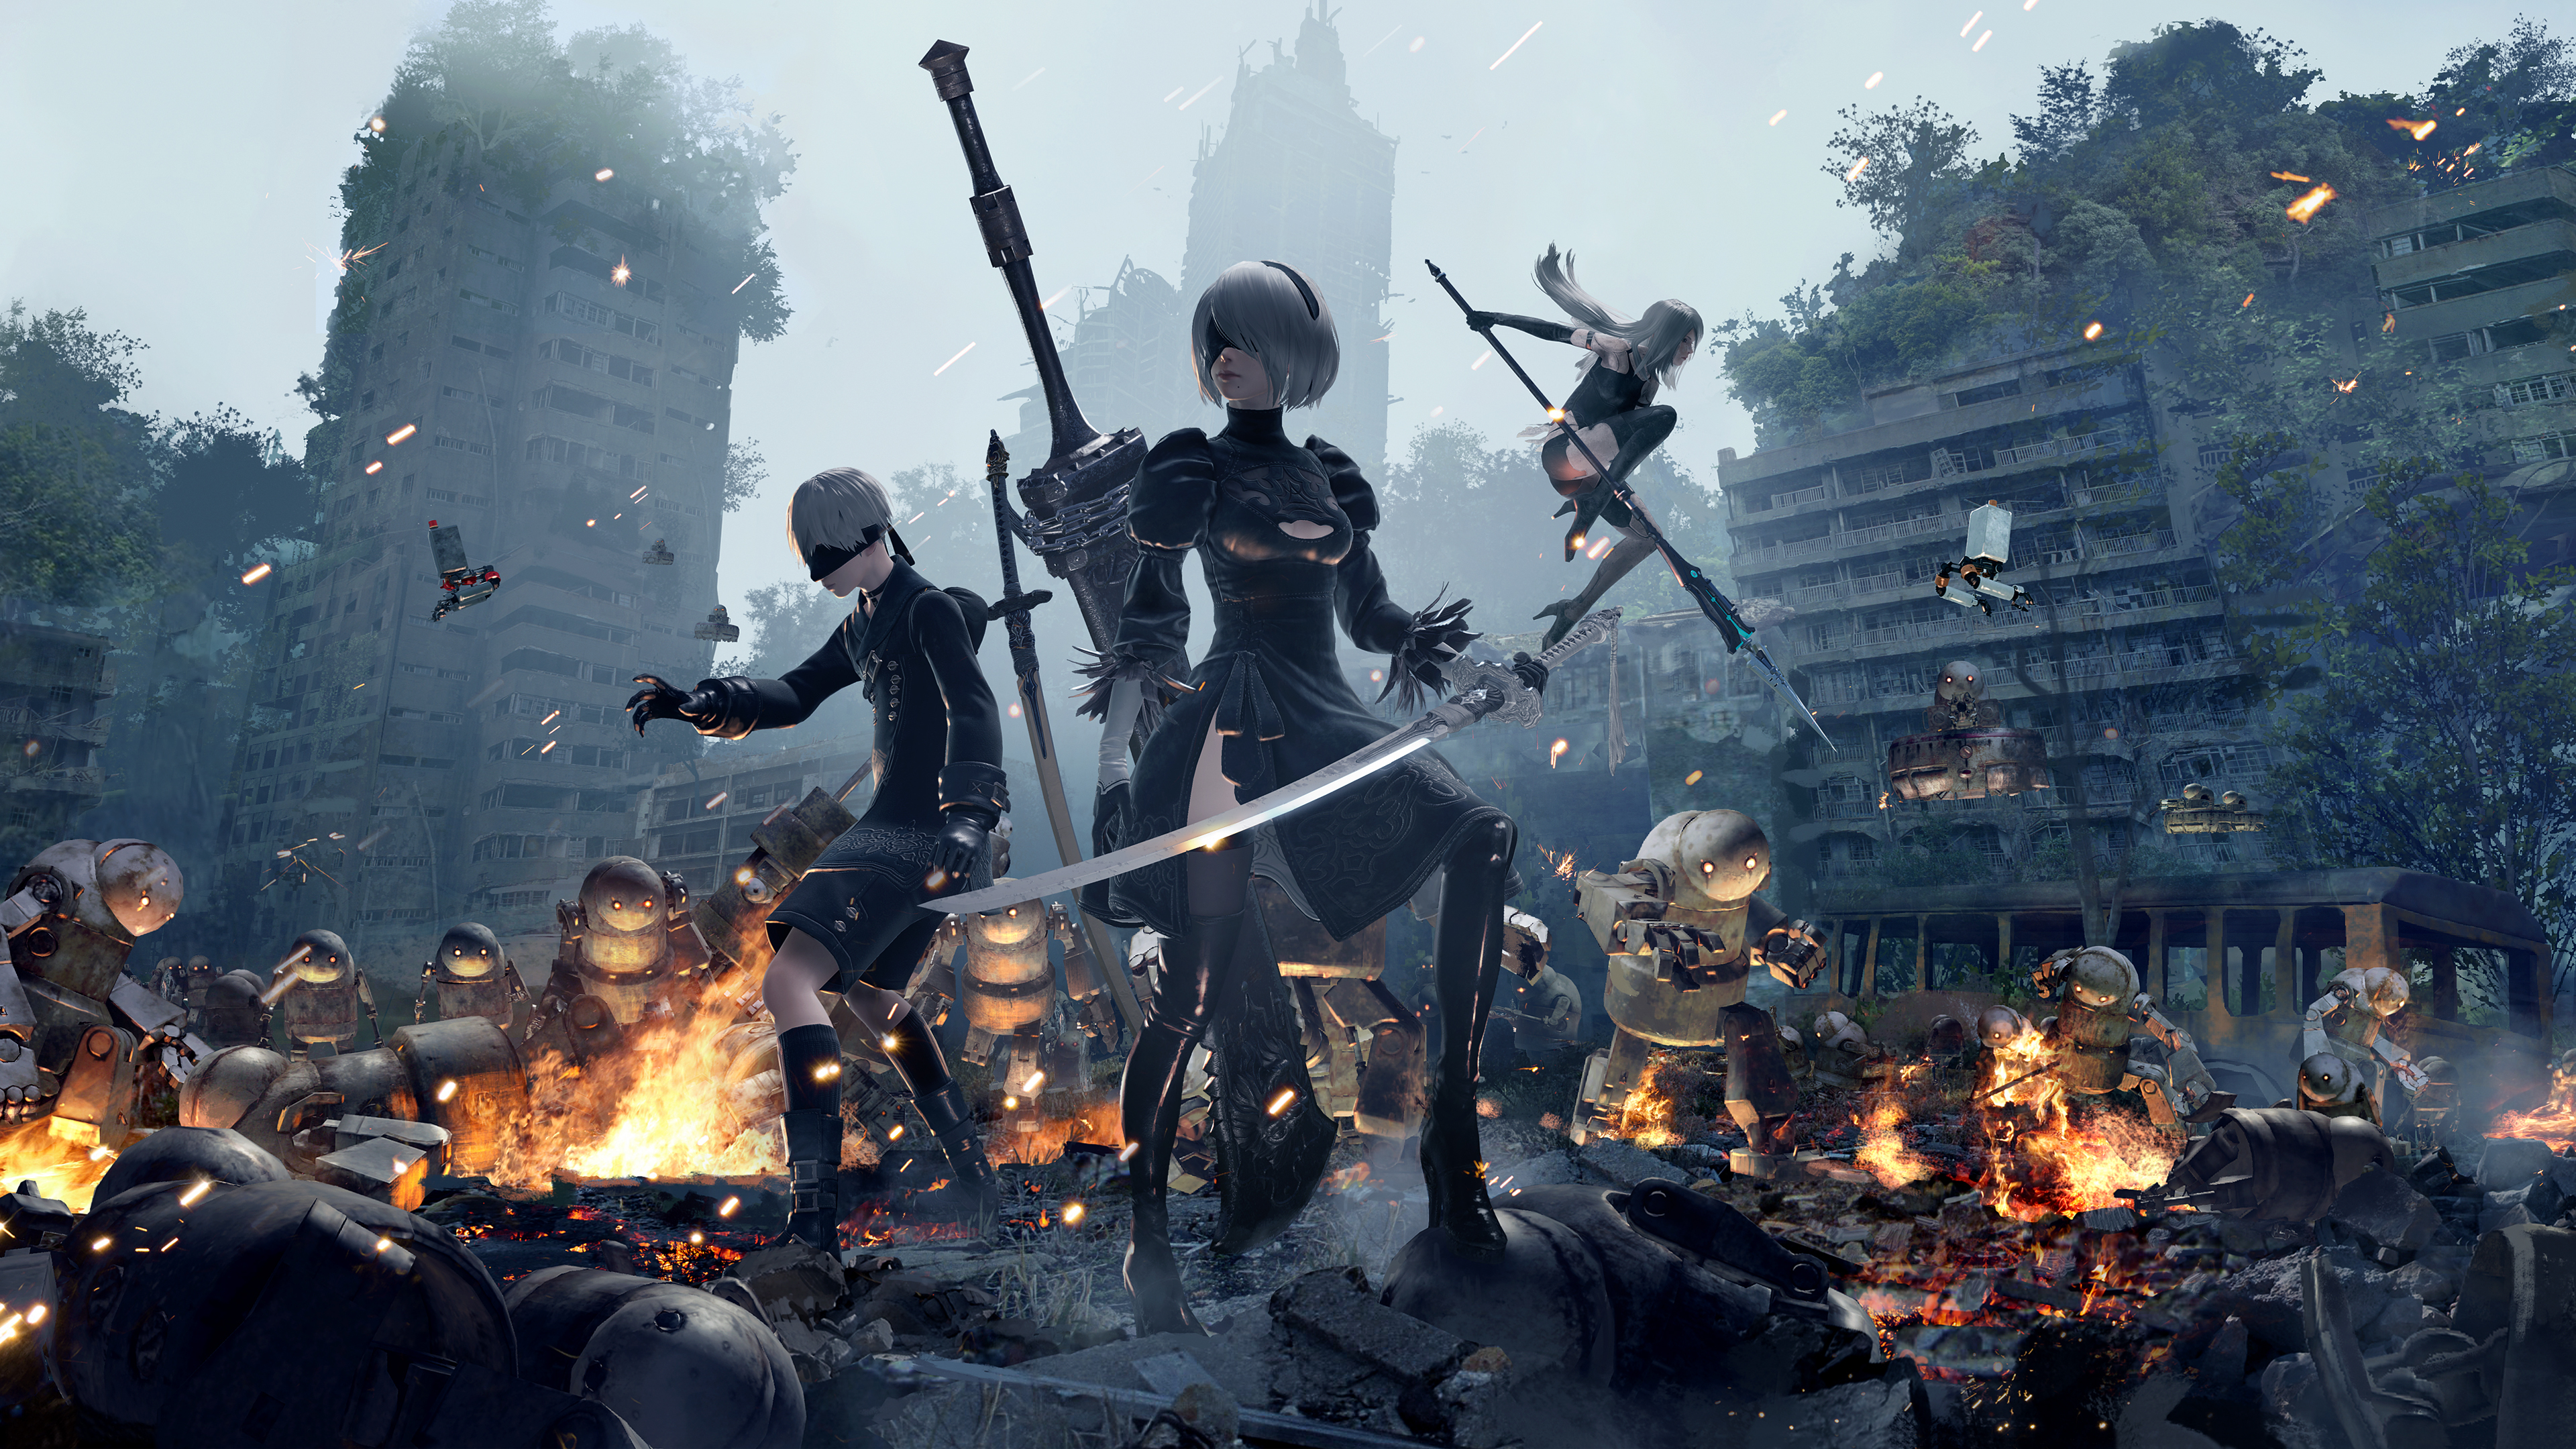 Wallpaper 4k 9s 2b And A2 Nier Automata 4k 2018 Games Wallpapers